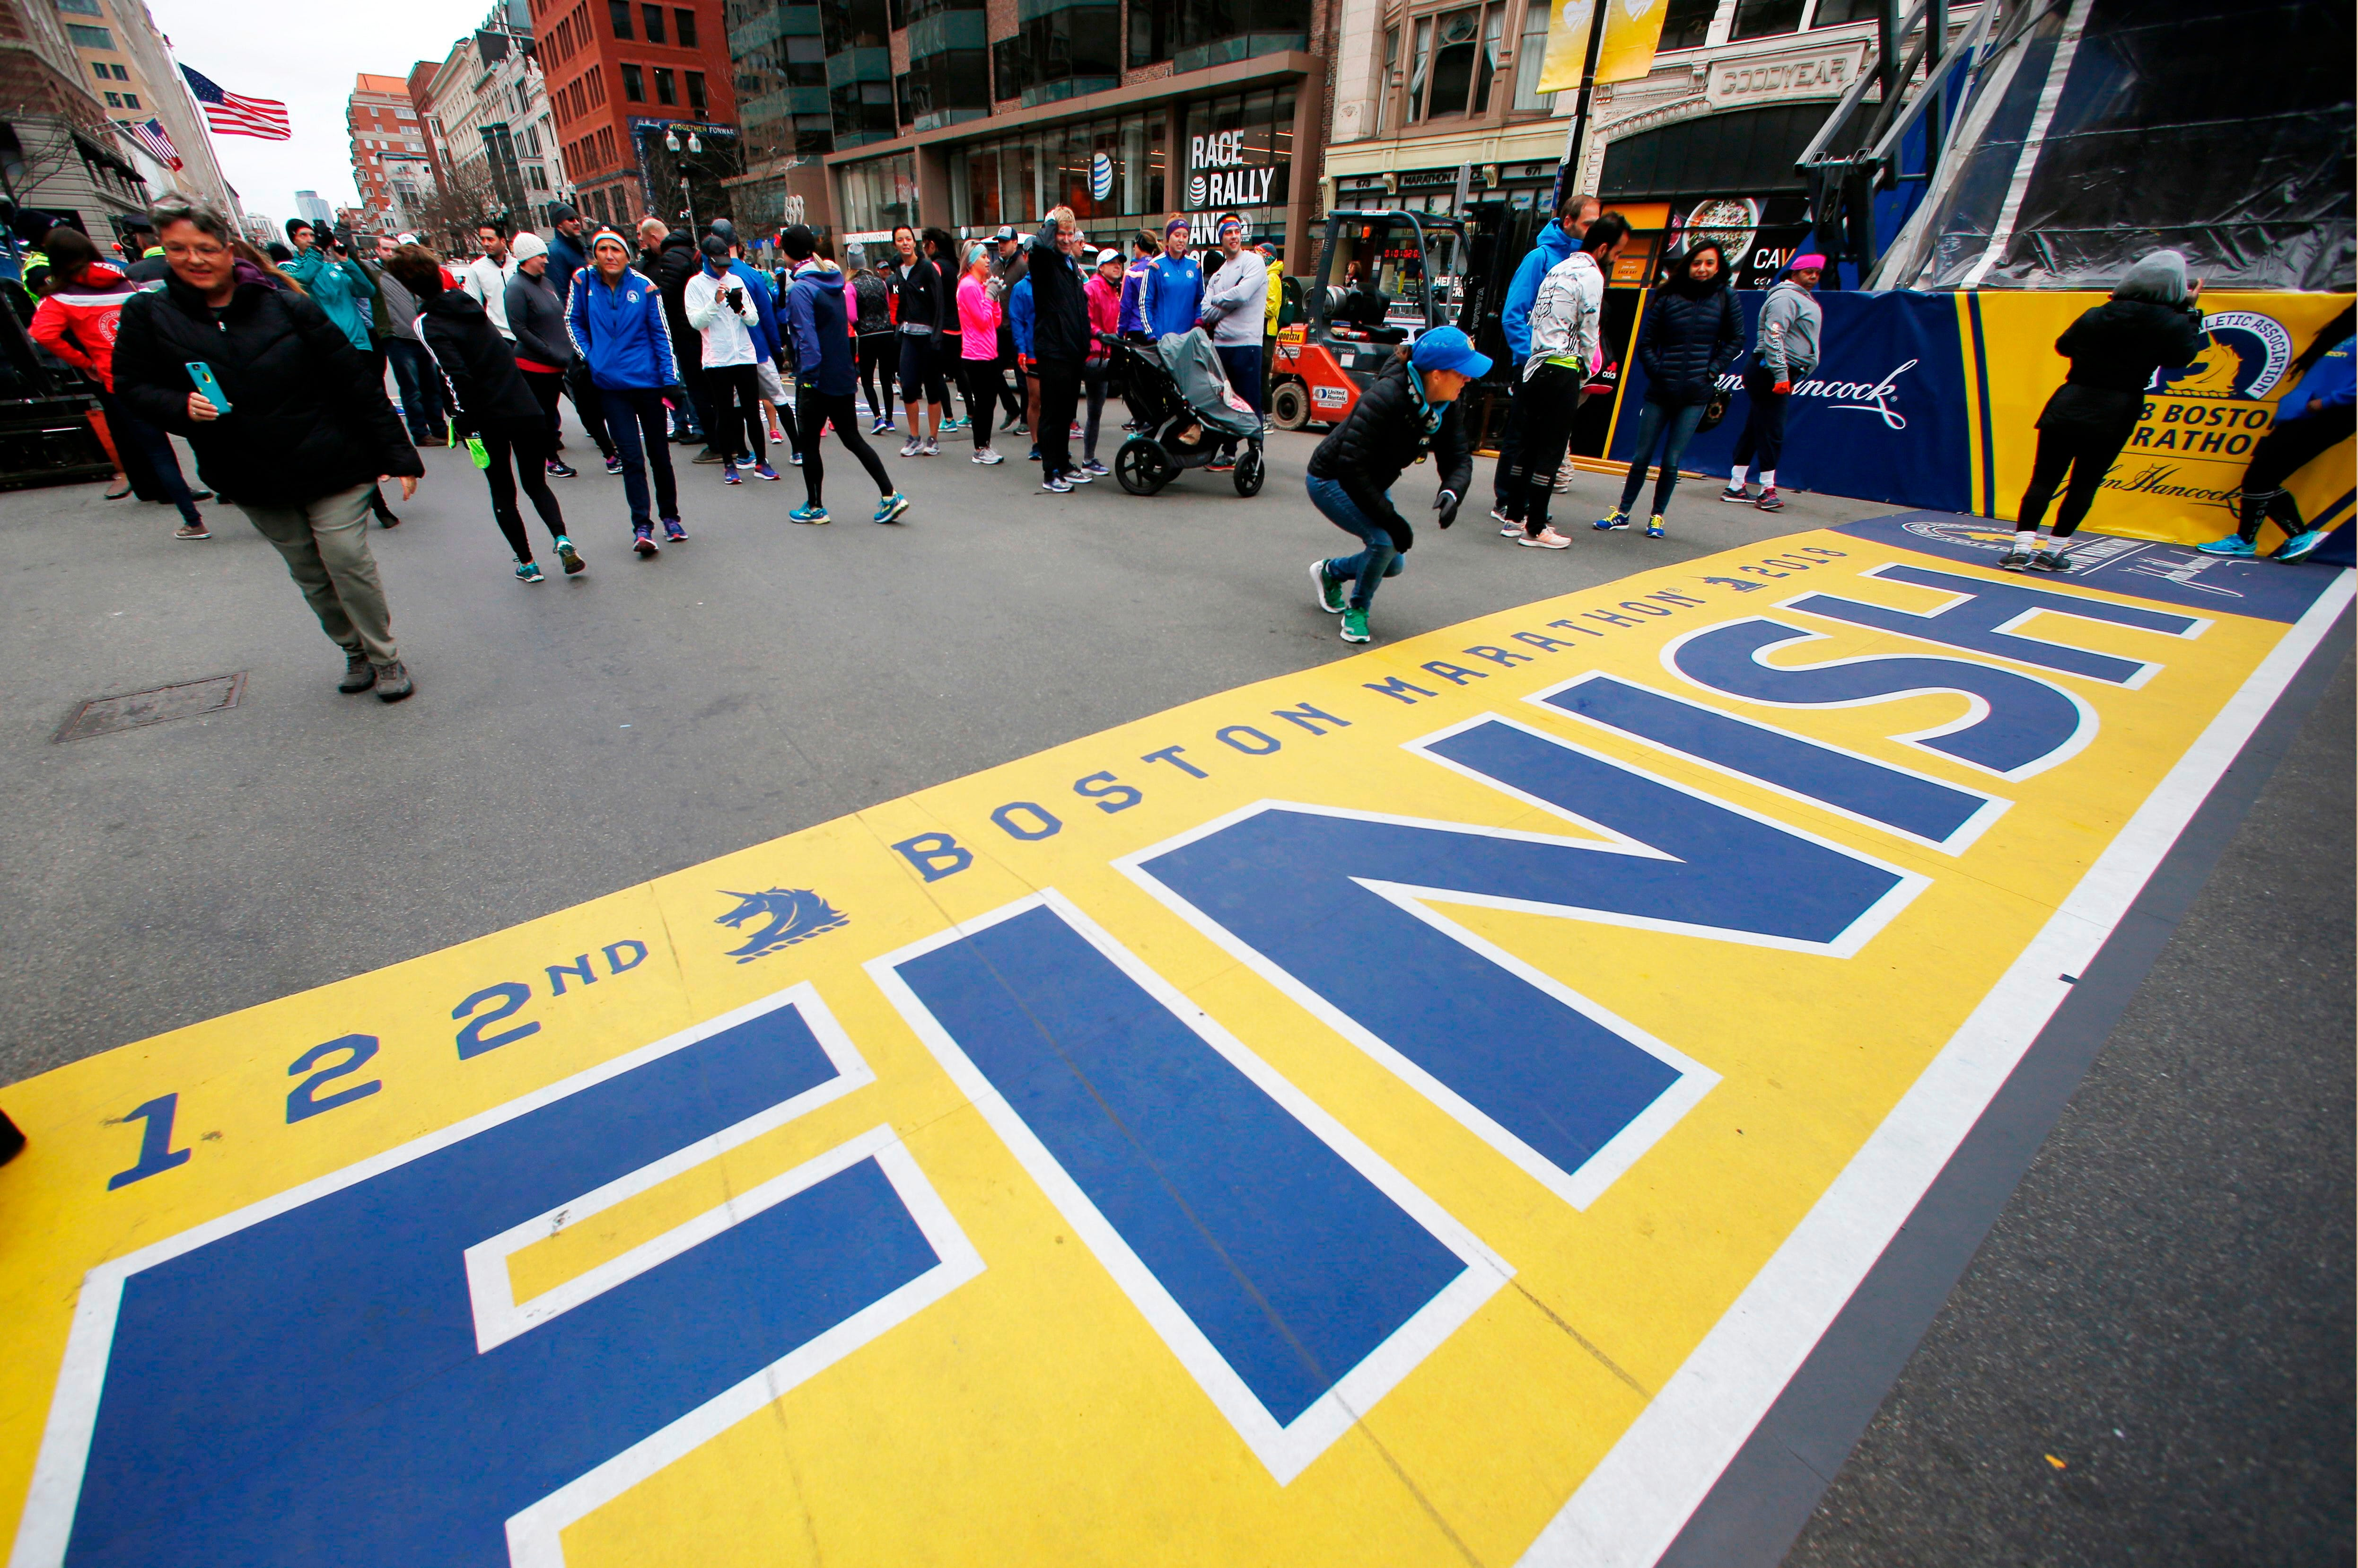 Returning to Boston Marathon five years after bombings, we never take it for granted